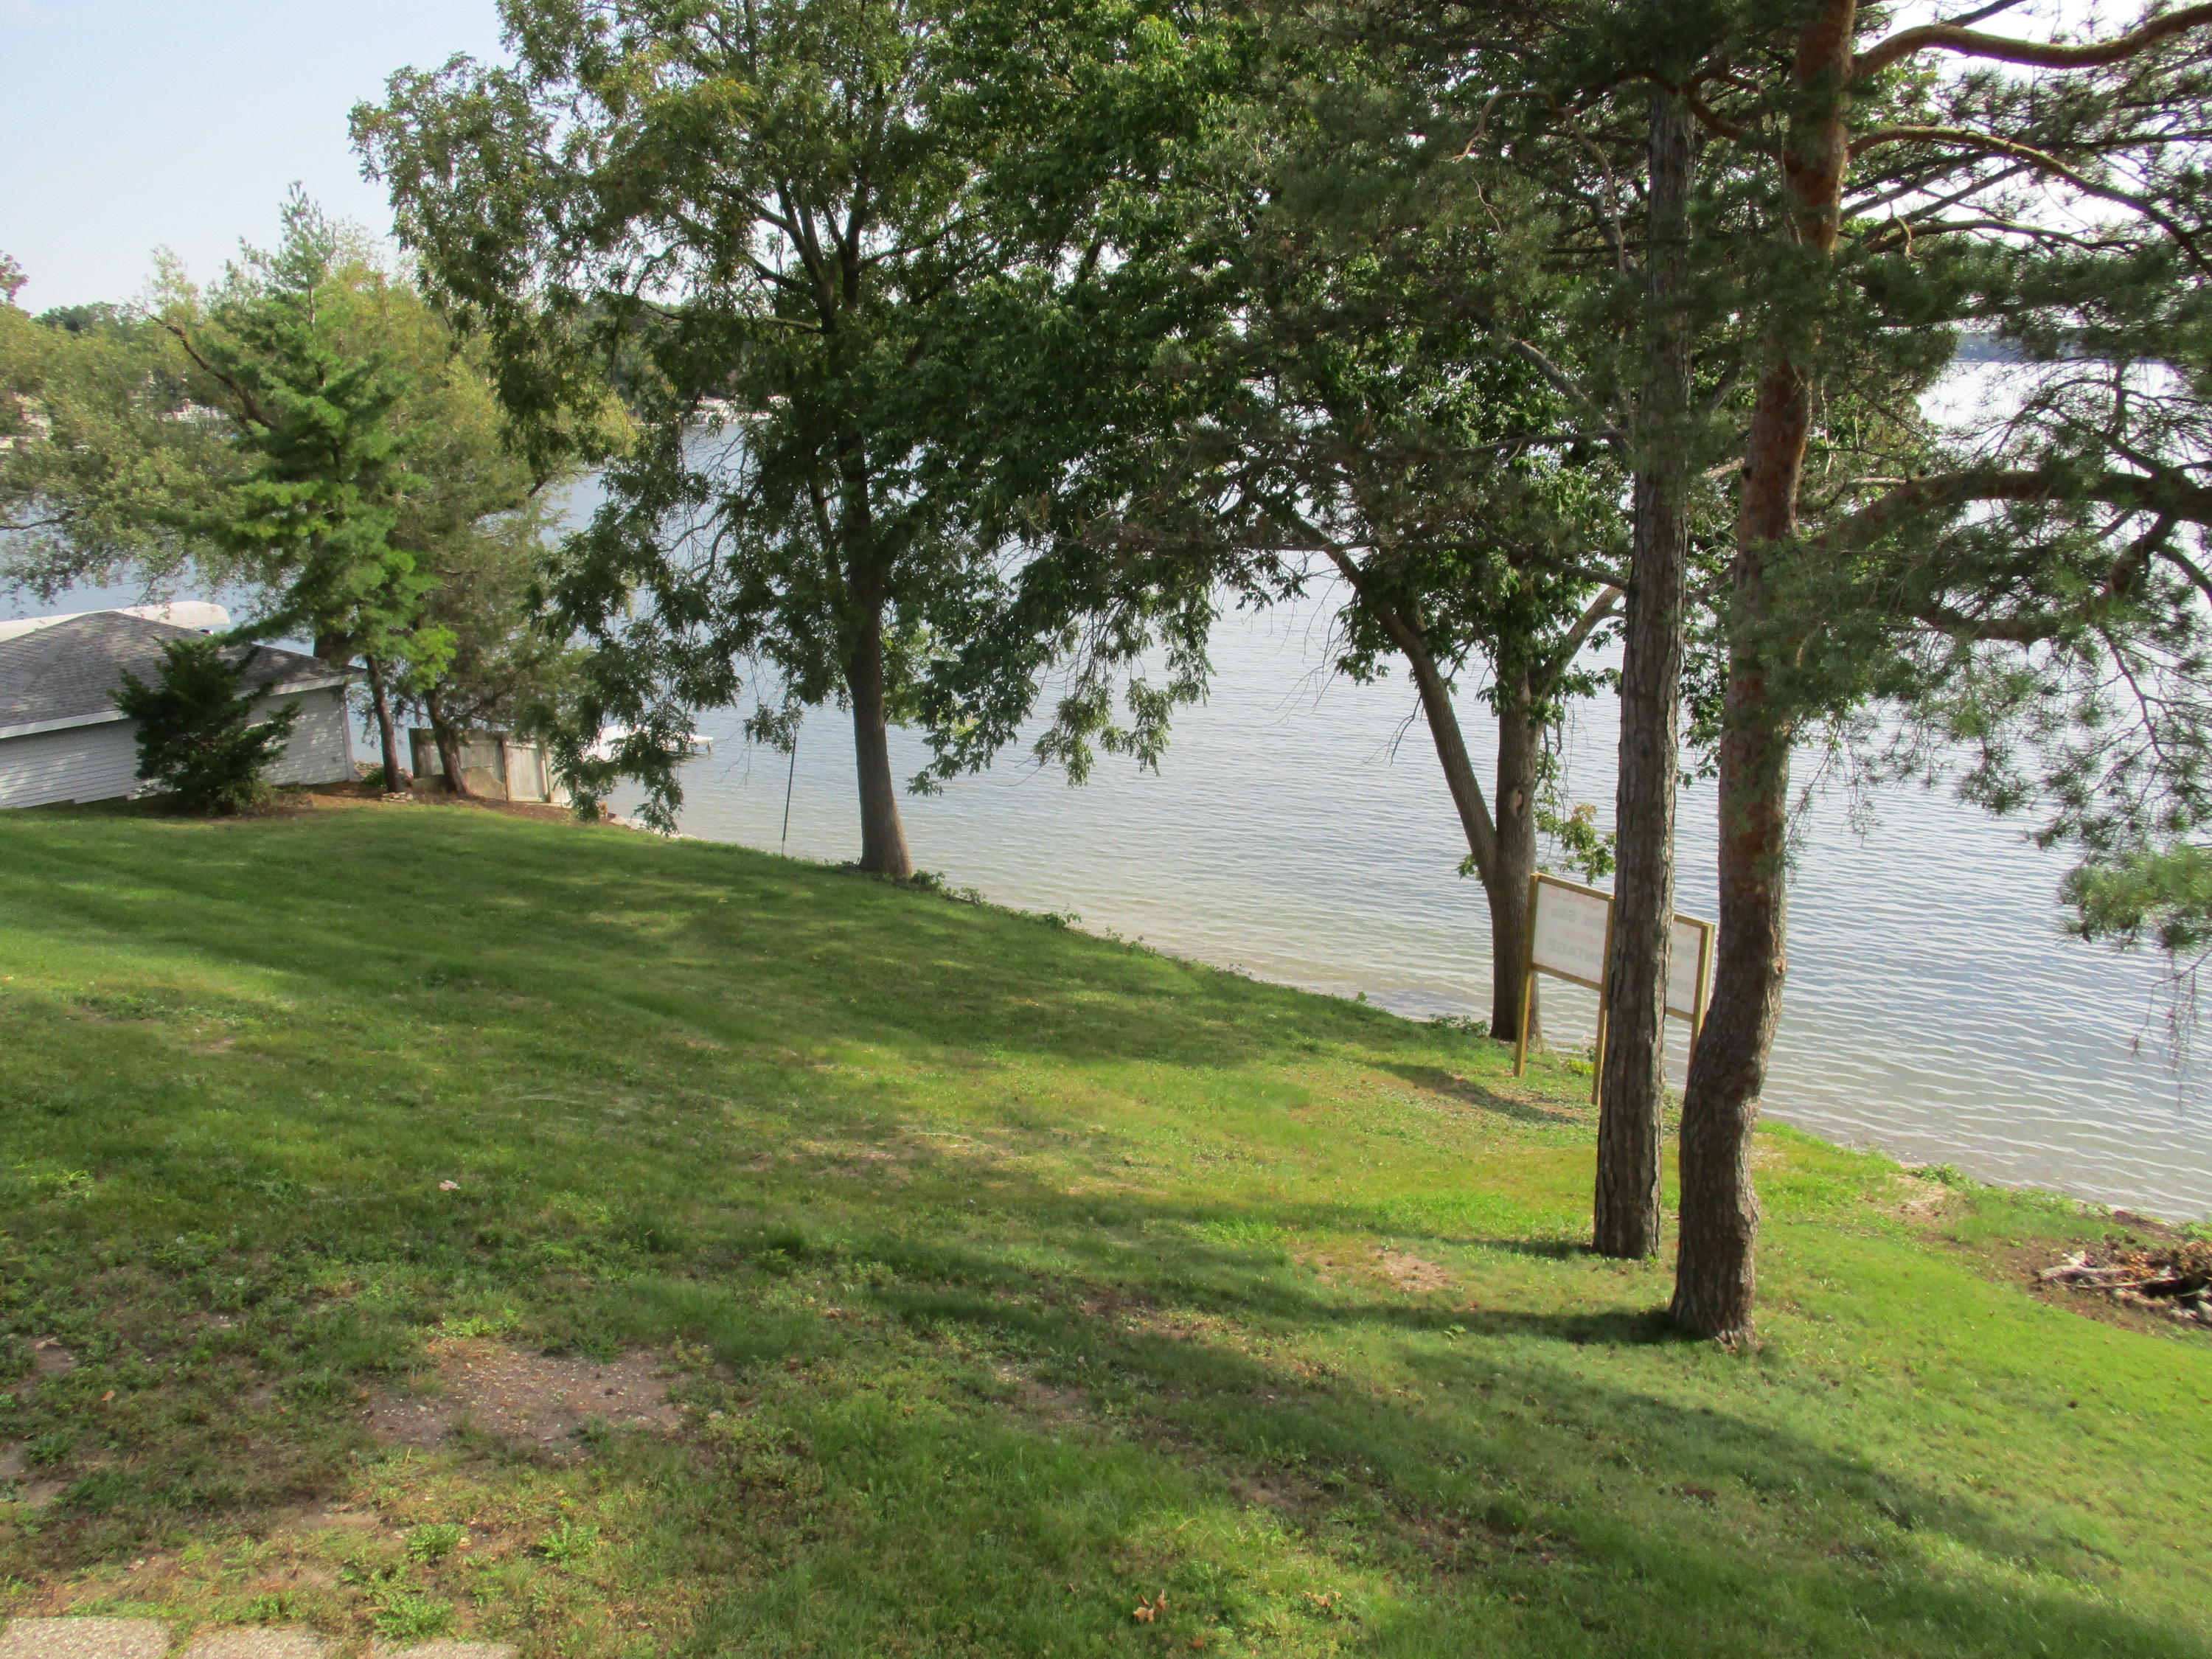 N56W34575 Whittaker Rd, Oconomowoc, Wisconsin 53066, ,Vacant Land,For Sale,Whittaker Rd,1616160